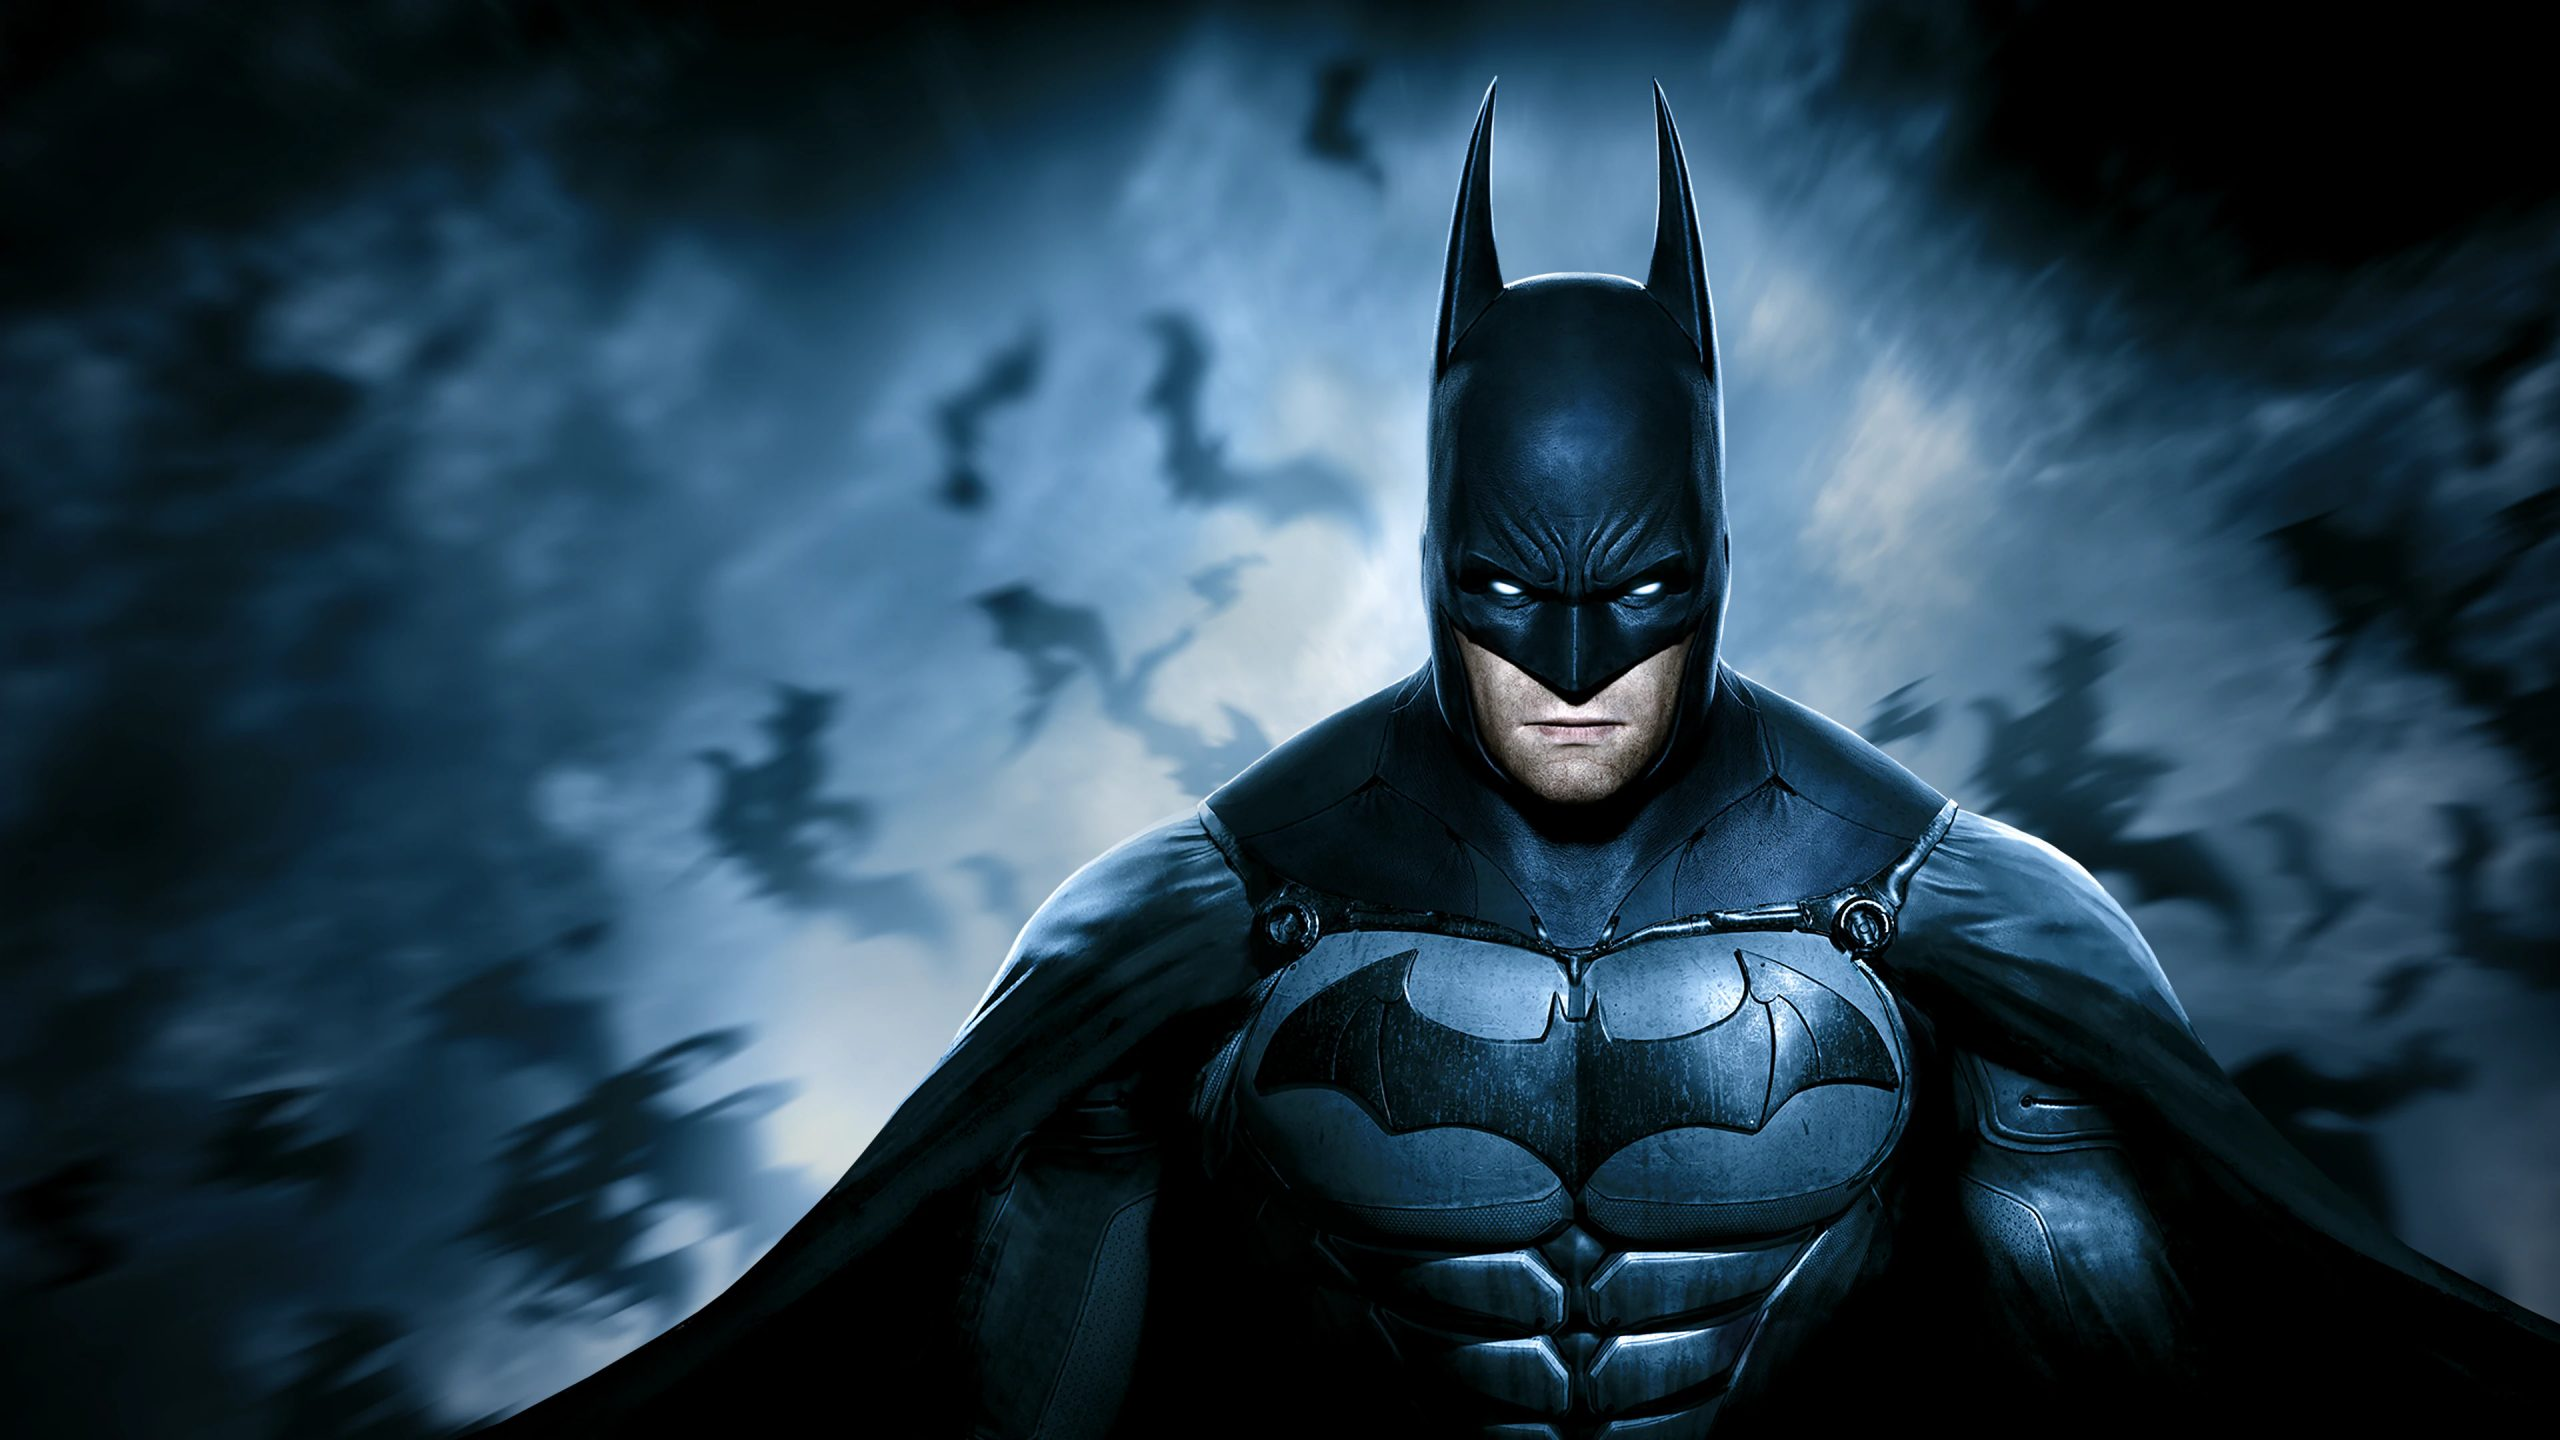 Batman will have his own podcast on HBO Max with